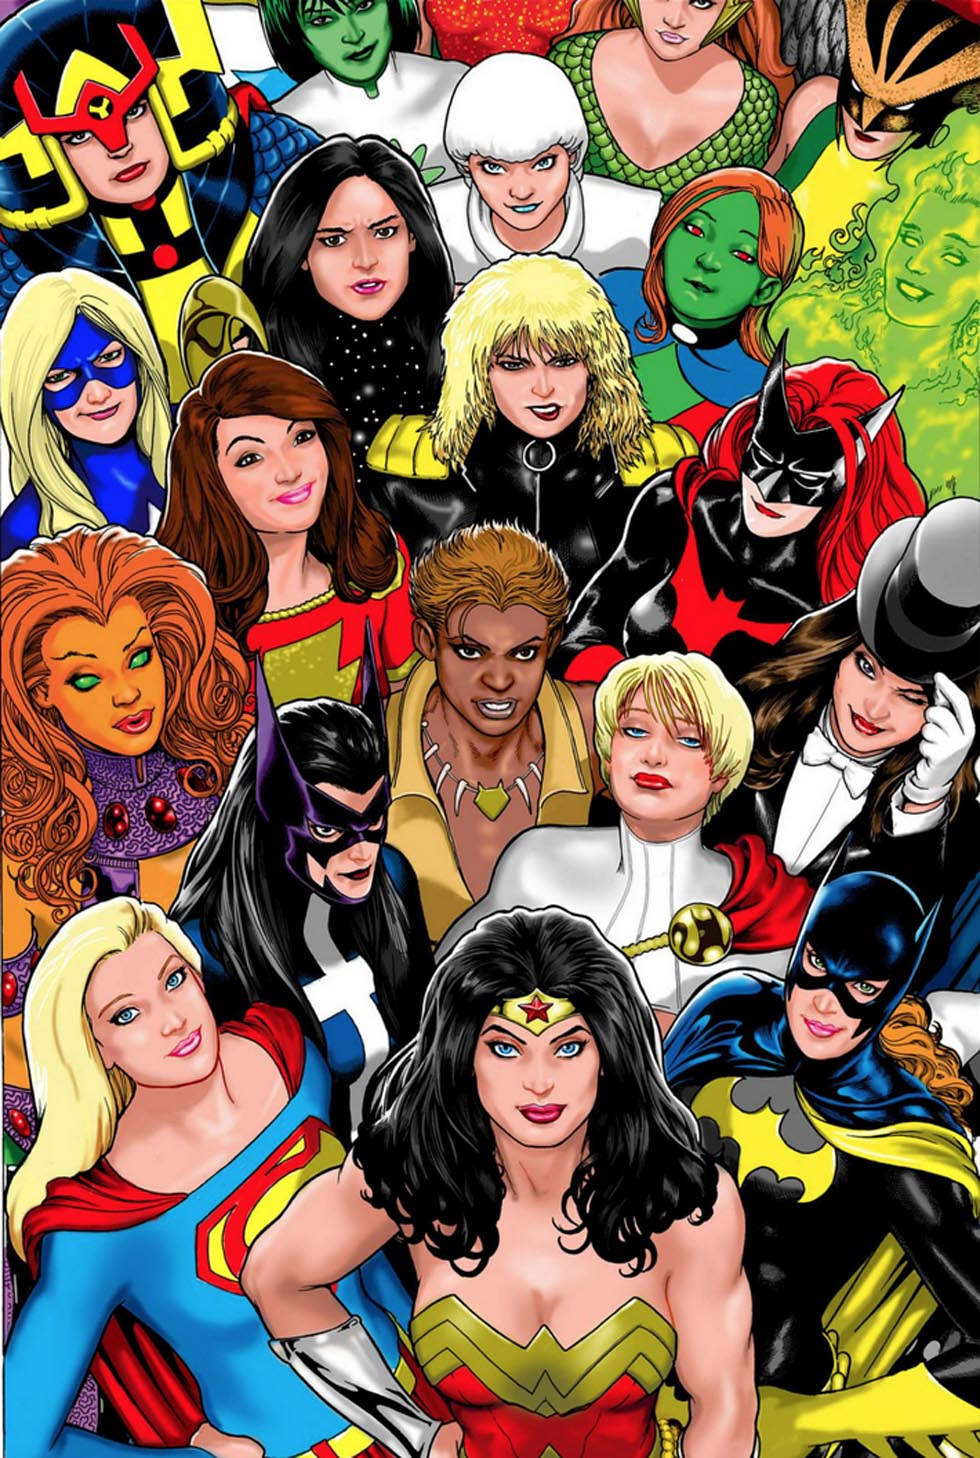 Are available? Female comic characters